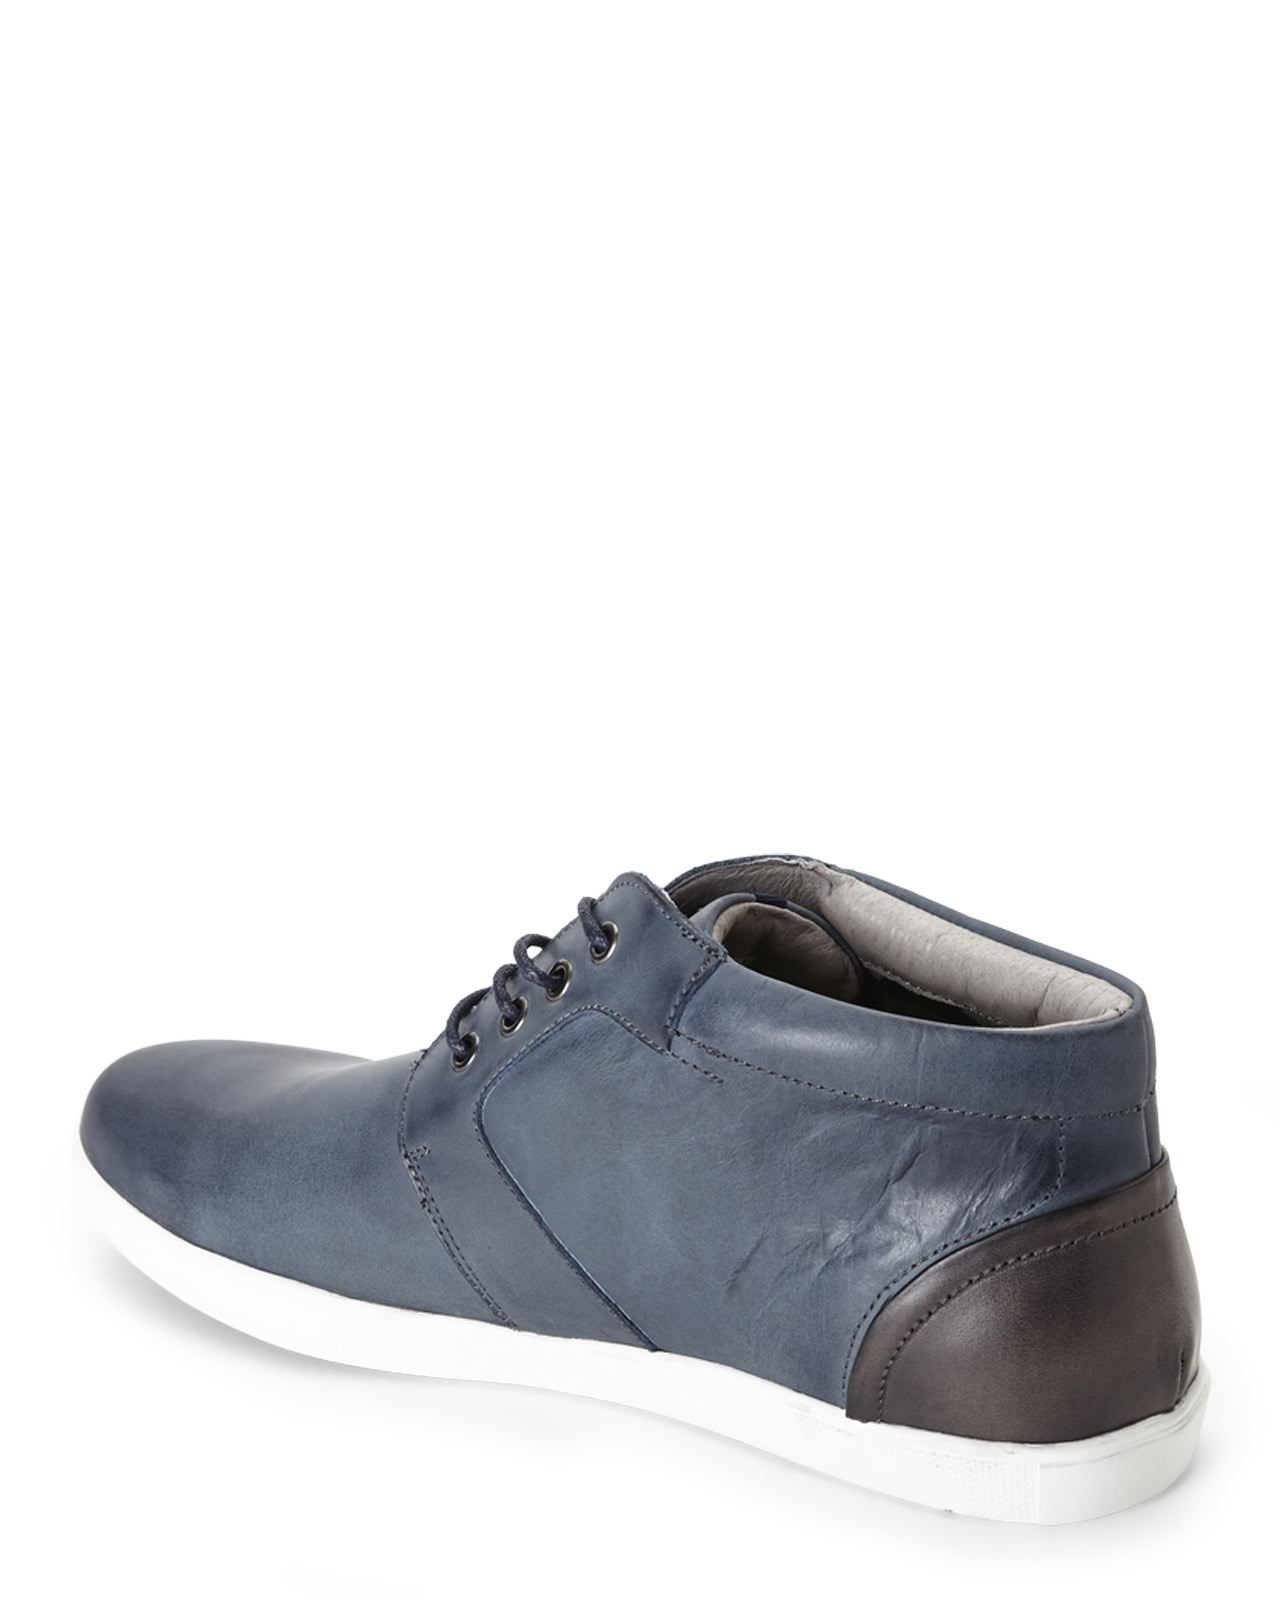 Men's Joe's Jeans Shoes Los Angeles-based Joe's Jeans was created in by founder and creative director Joe Dahan. Since its inception, the casual chic lifestyle brand has been redefining the denim landscape with its form-fitting shapes and flattering cuts.